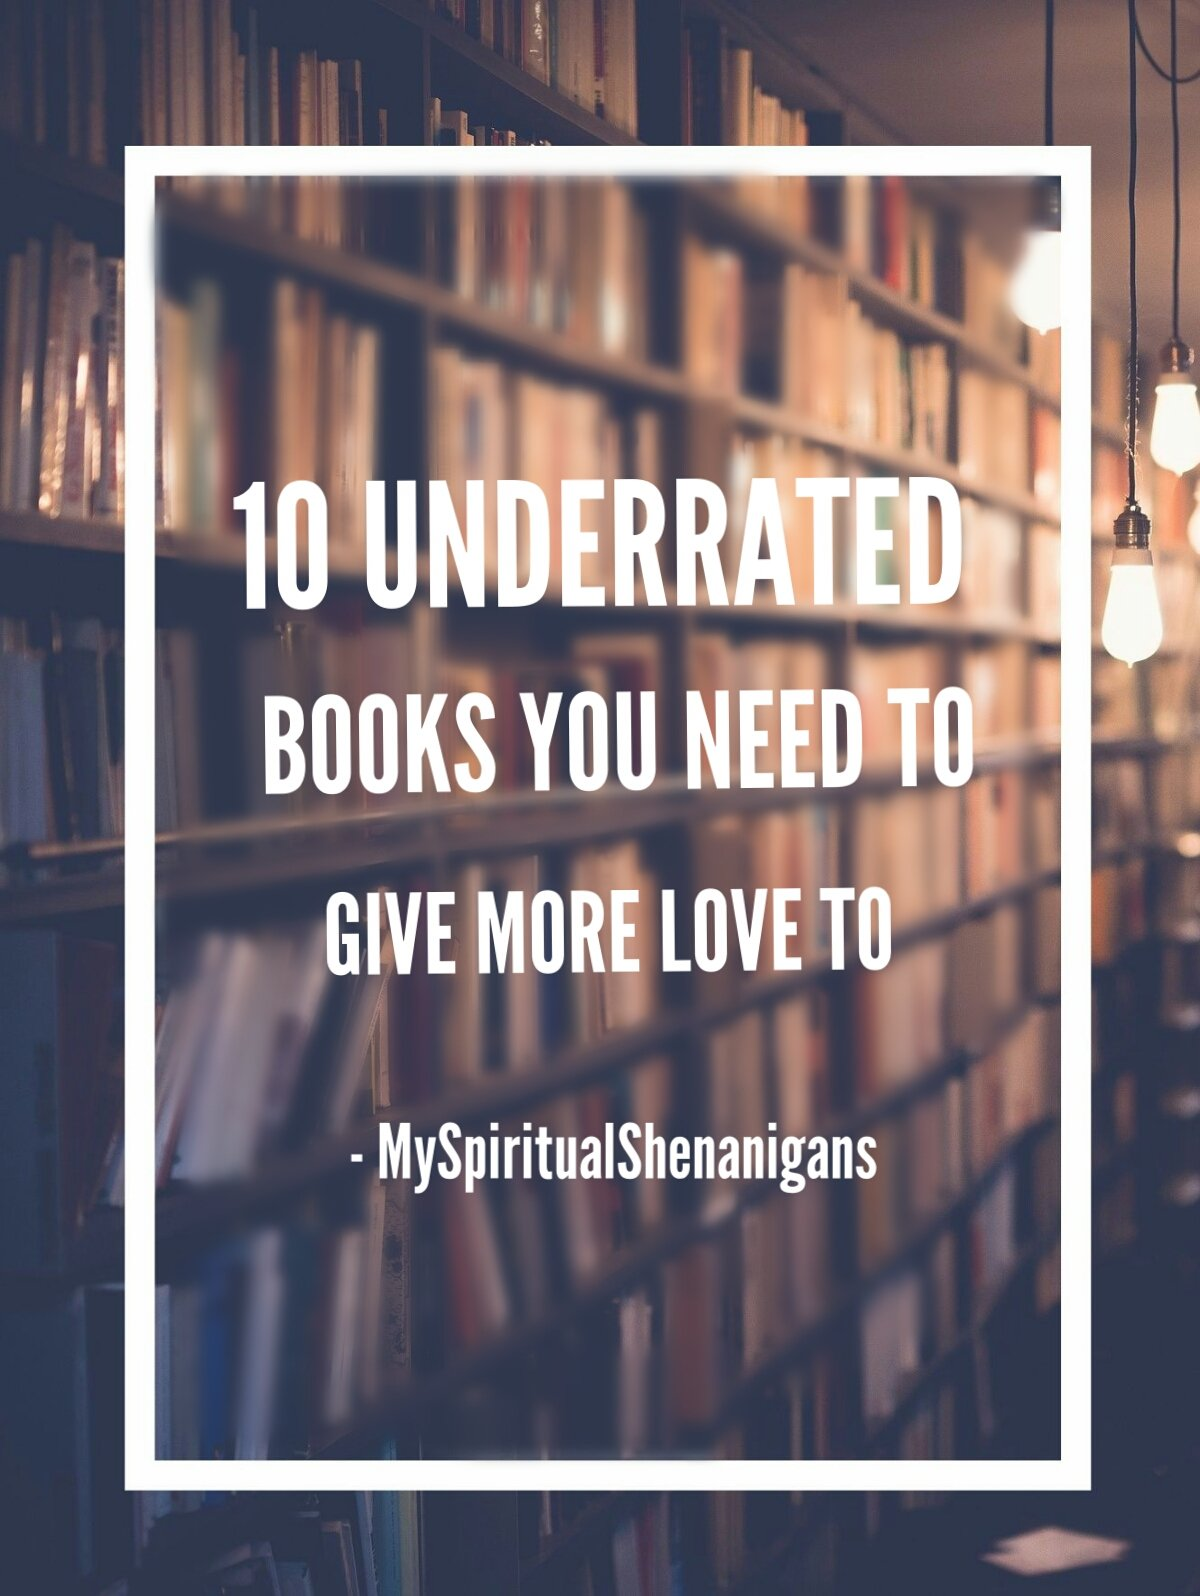 10 underrated must-read books pin for pinterest